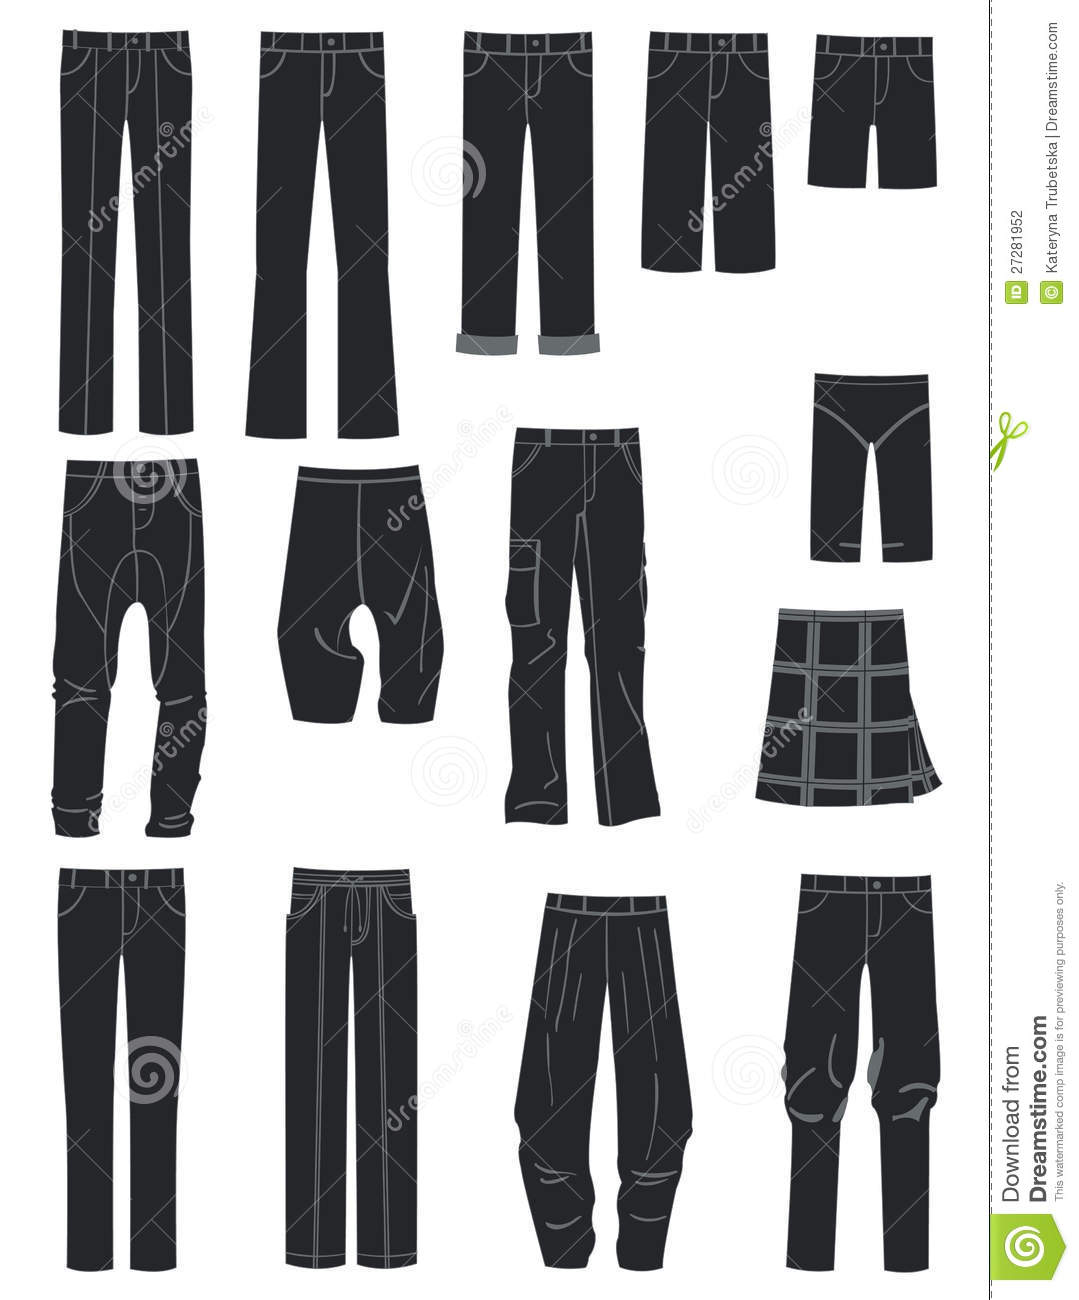 How to Choose Men's Pants for Silhouette